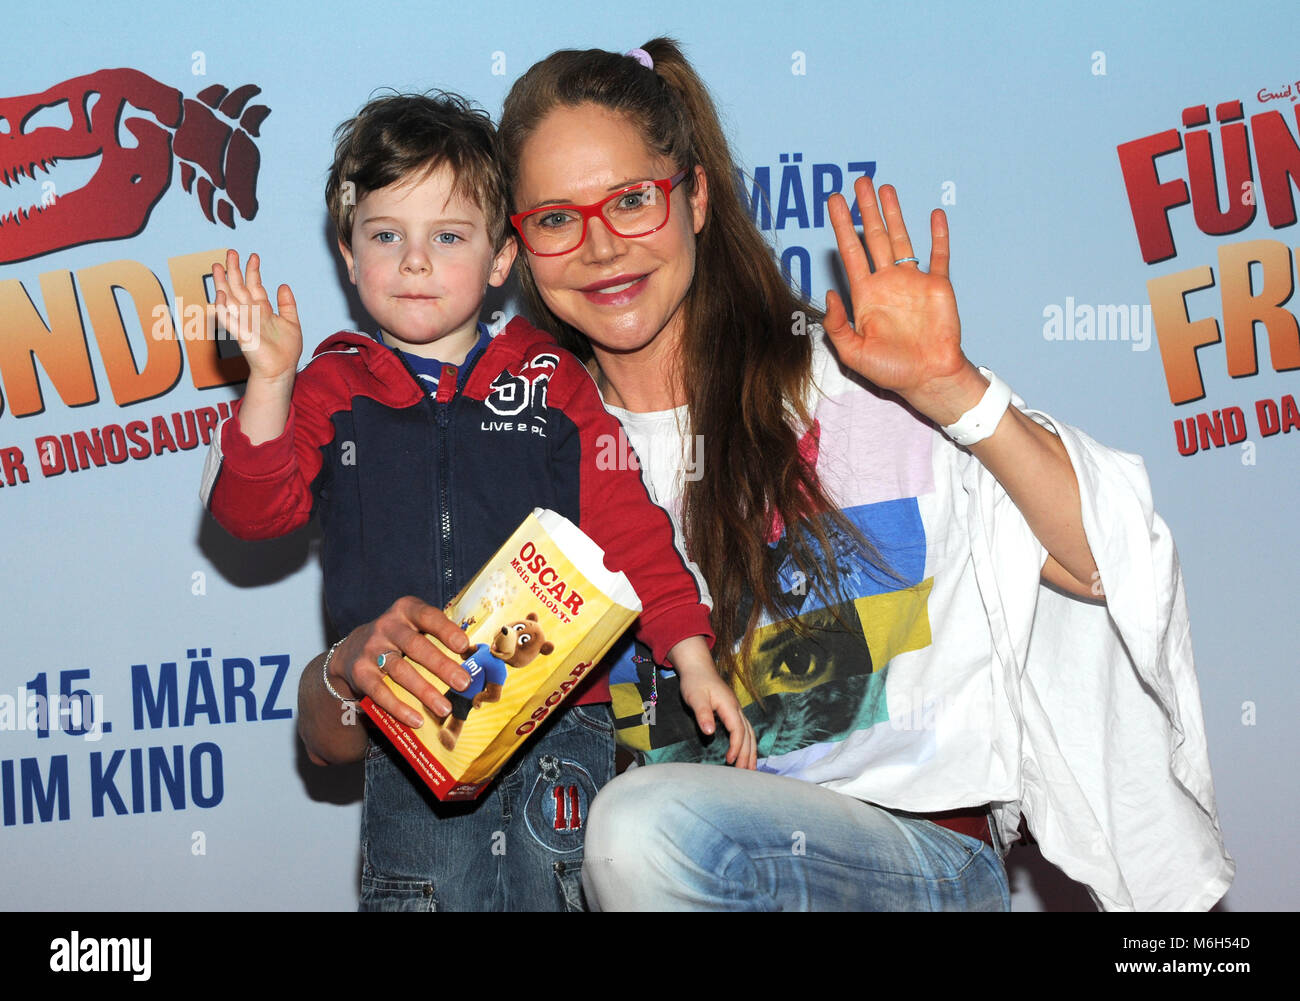 04 March 2018, Germany, Munich: Actress Doreen Dietel and her son Marlow arriving at the premiere of 'Fünf - Stock Image